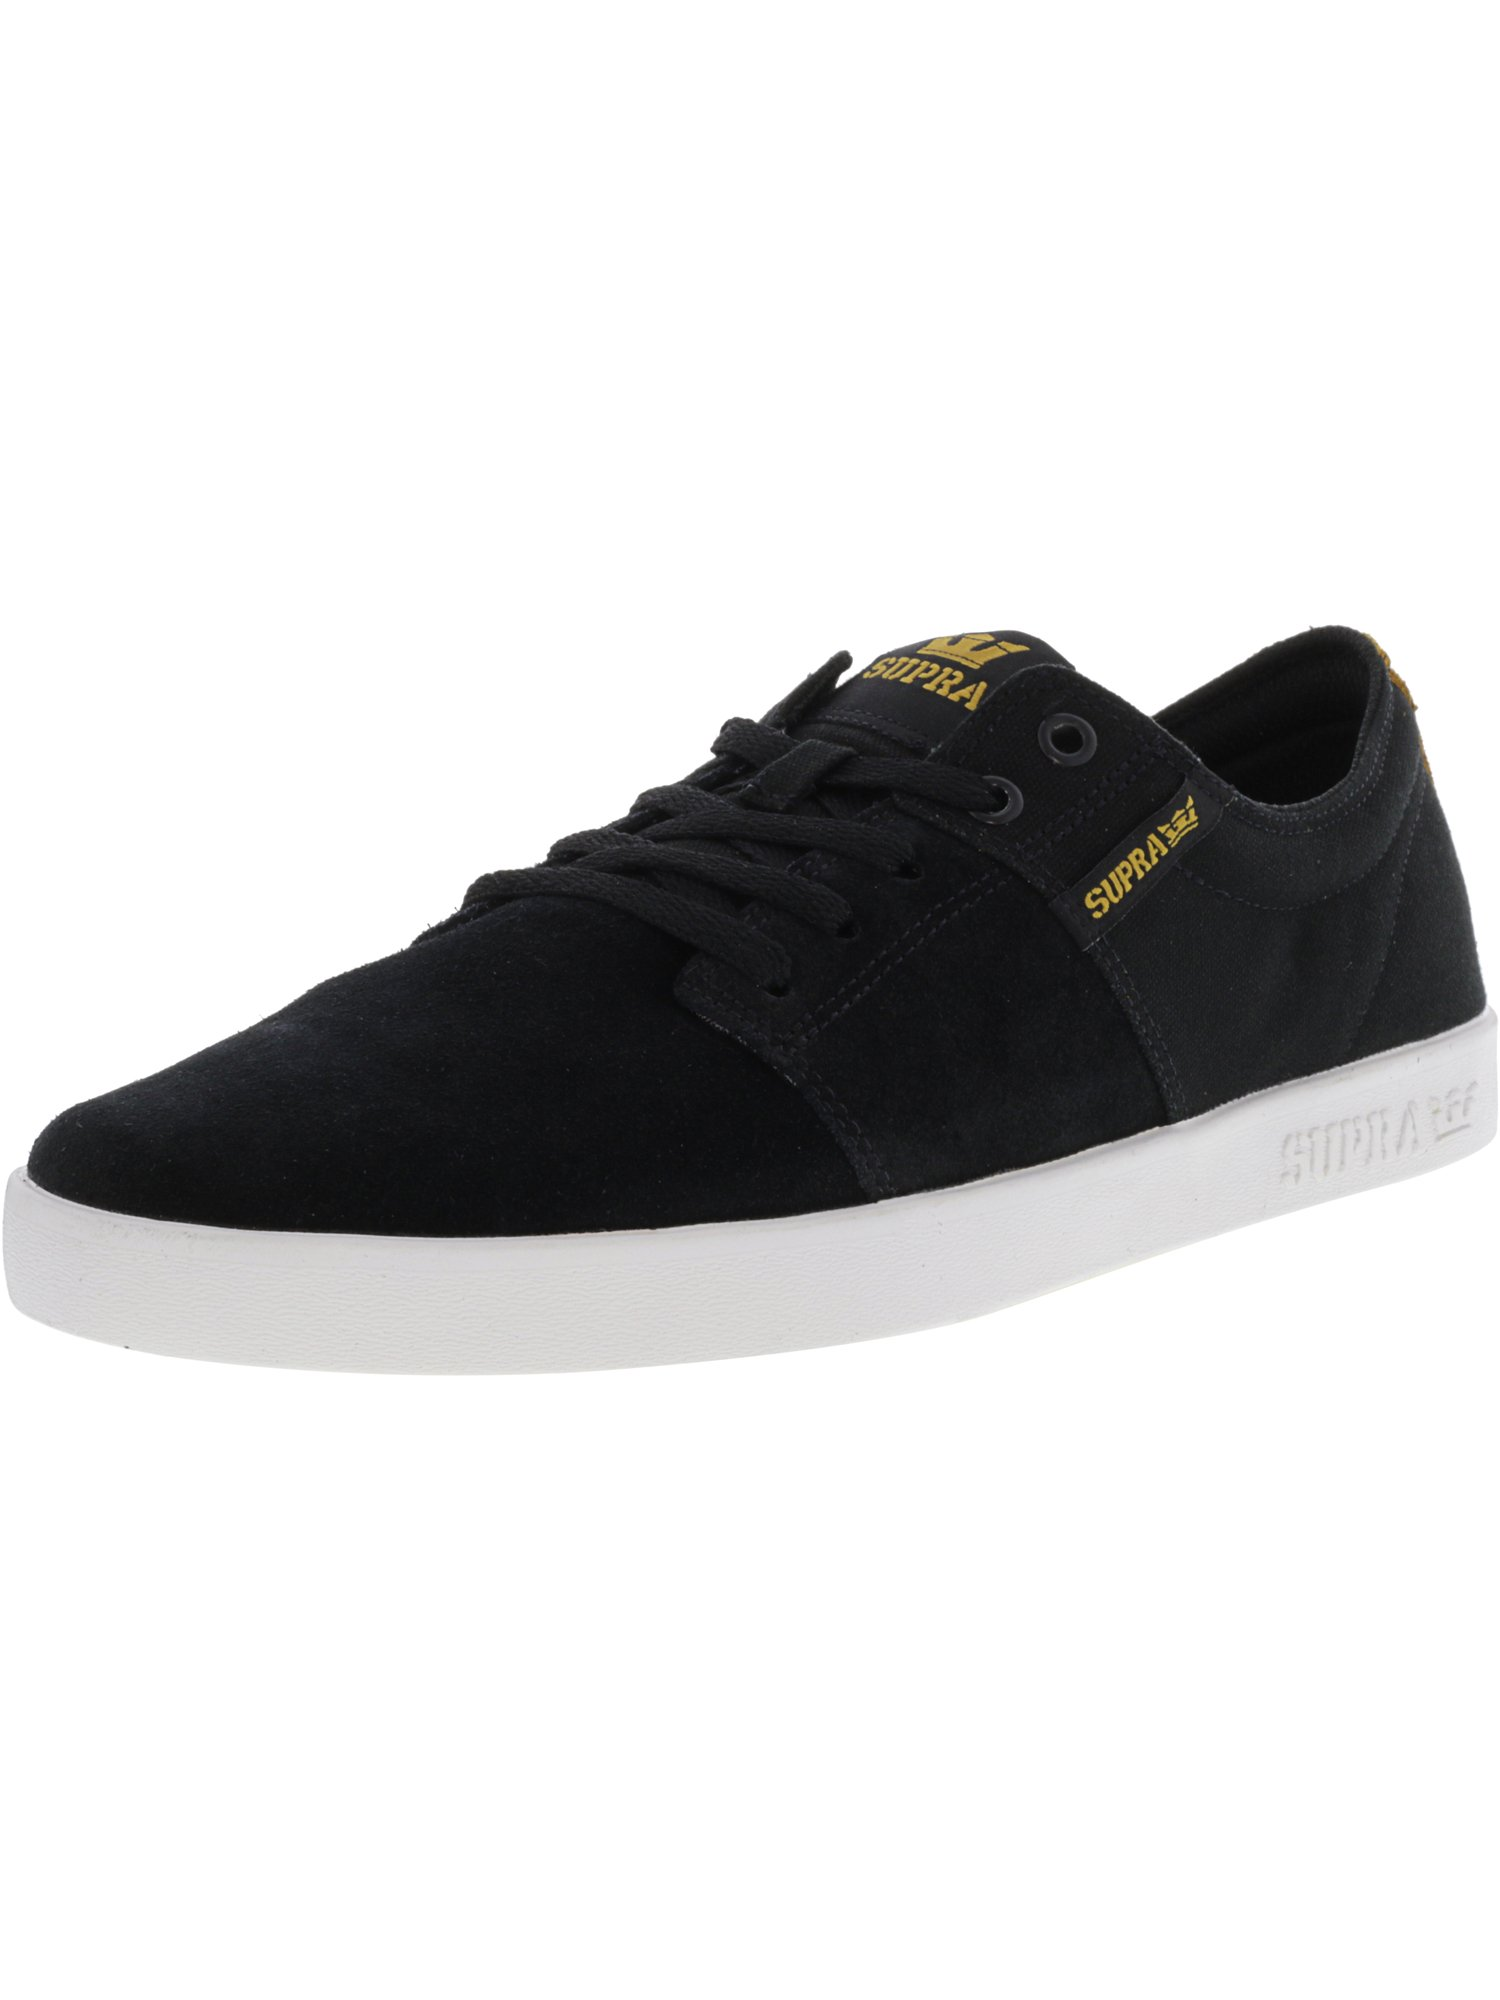 c28e6b06f557 SUPRA Mens Stacks II Canvas Low Top Lace Up Skateboarding Shoes